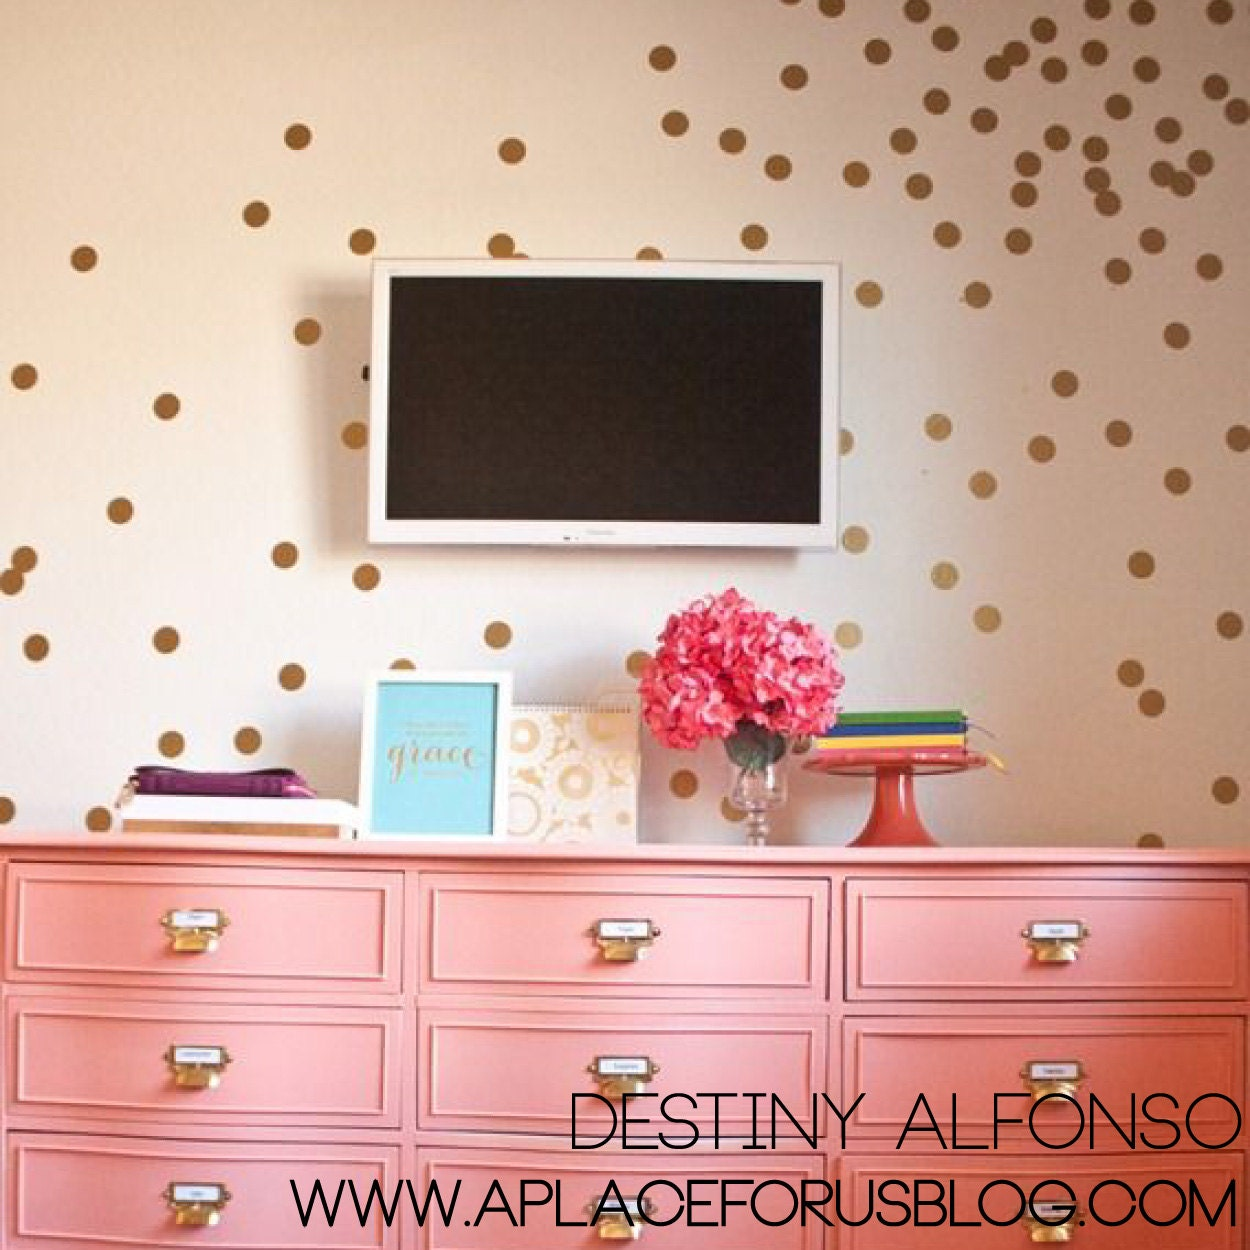 2 confetti polka dot wall decals for Polka dot living room ideas